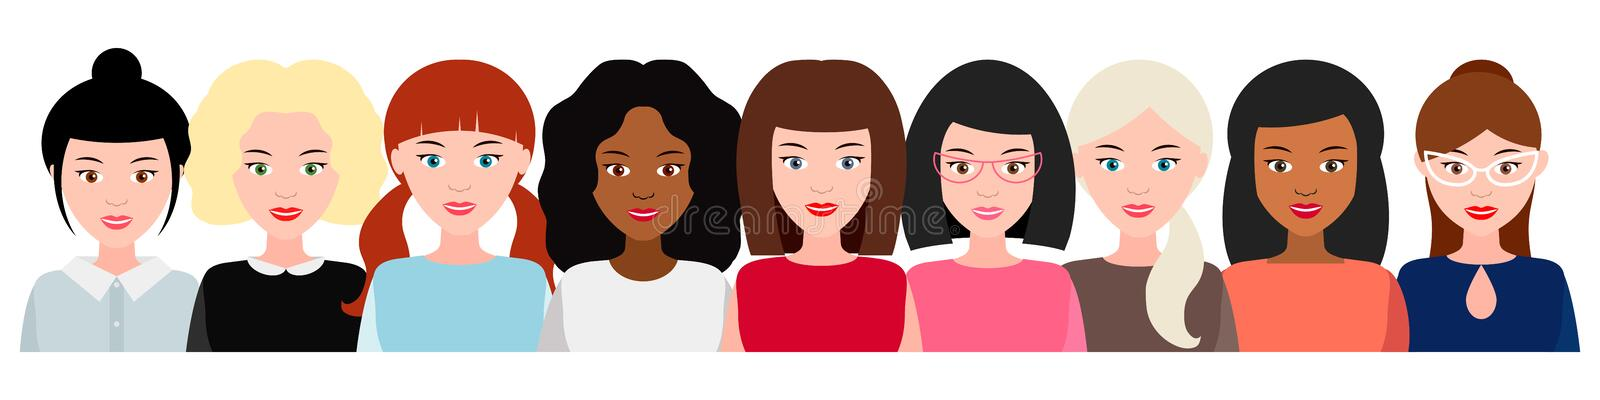 Group of smiling women, a social movement, the empowerment of women. concept of feminism, power girls. Vector. Cohesive group of smiling women, social movement vector illustration